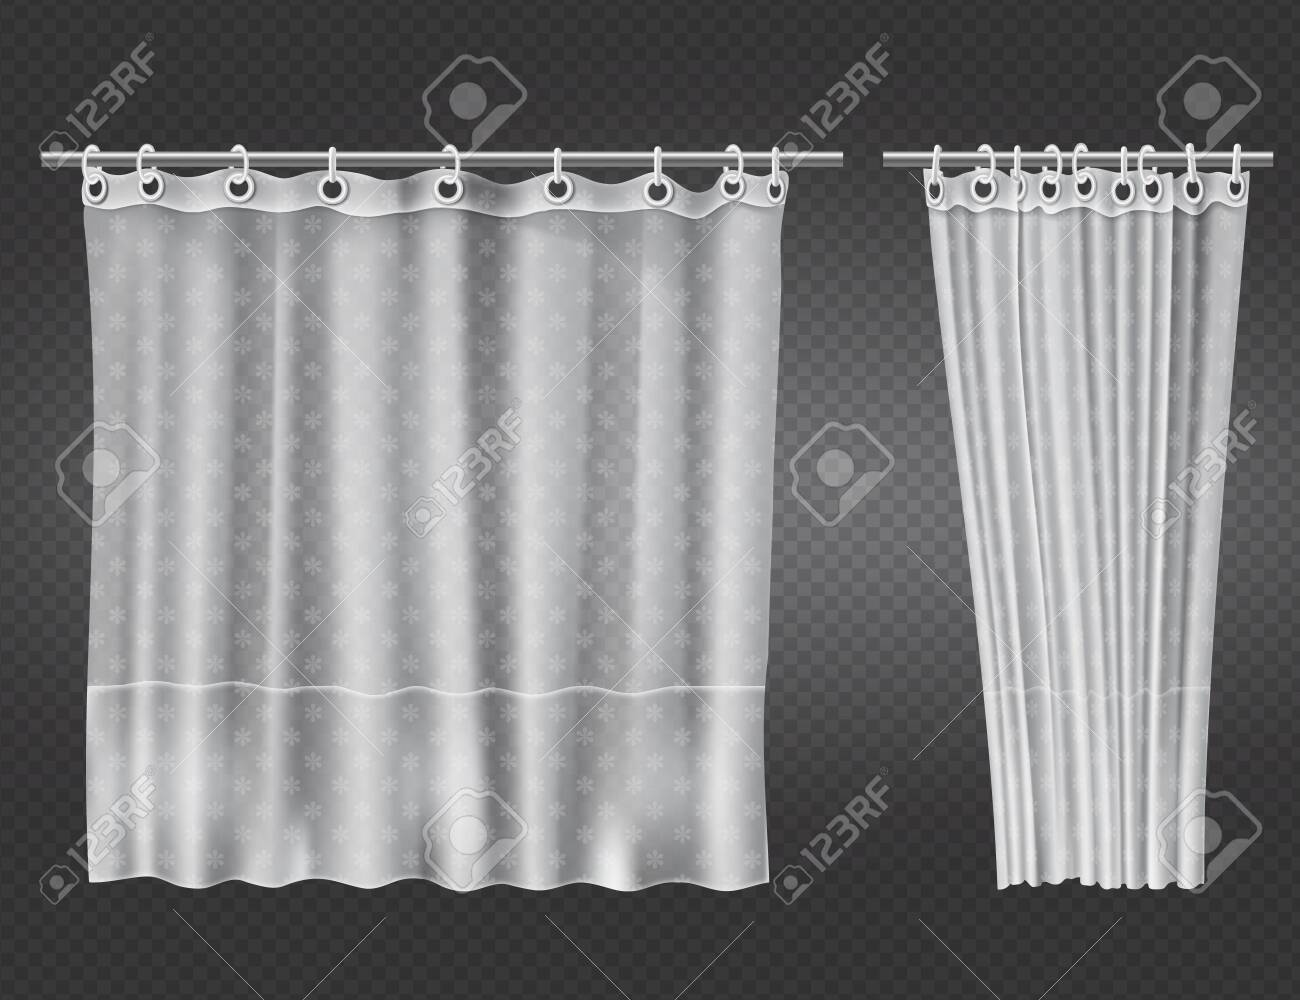 Picture of: White Clear Shower Curtains With Flowers Pattern Isolated On Royalty Free Cliparts Vectors And Stock Illustration Image 138535188